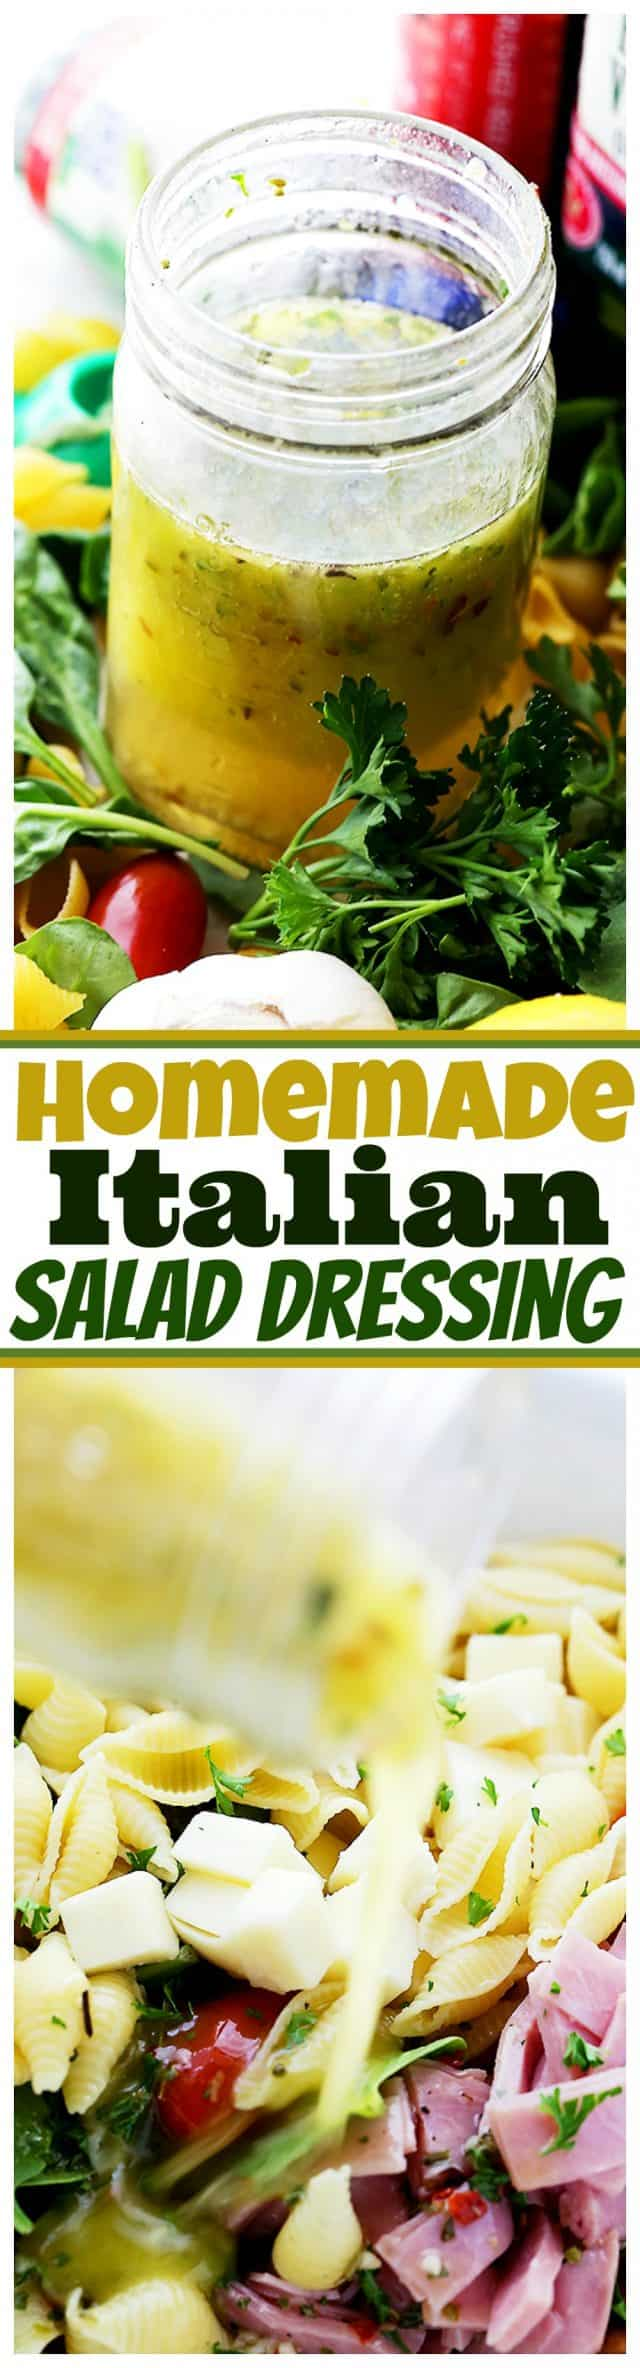 Homemade Italian Salad Dressing - This incredibly delicious, zesty Italian Dressing is so easy to make and so flavorful, you will never want to buy salad dressing again.